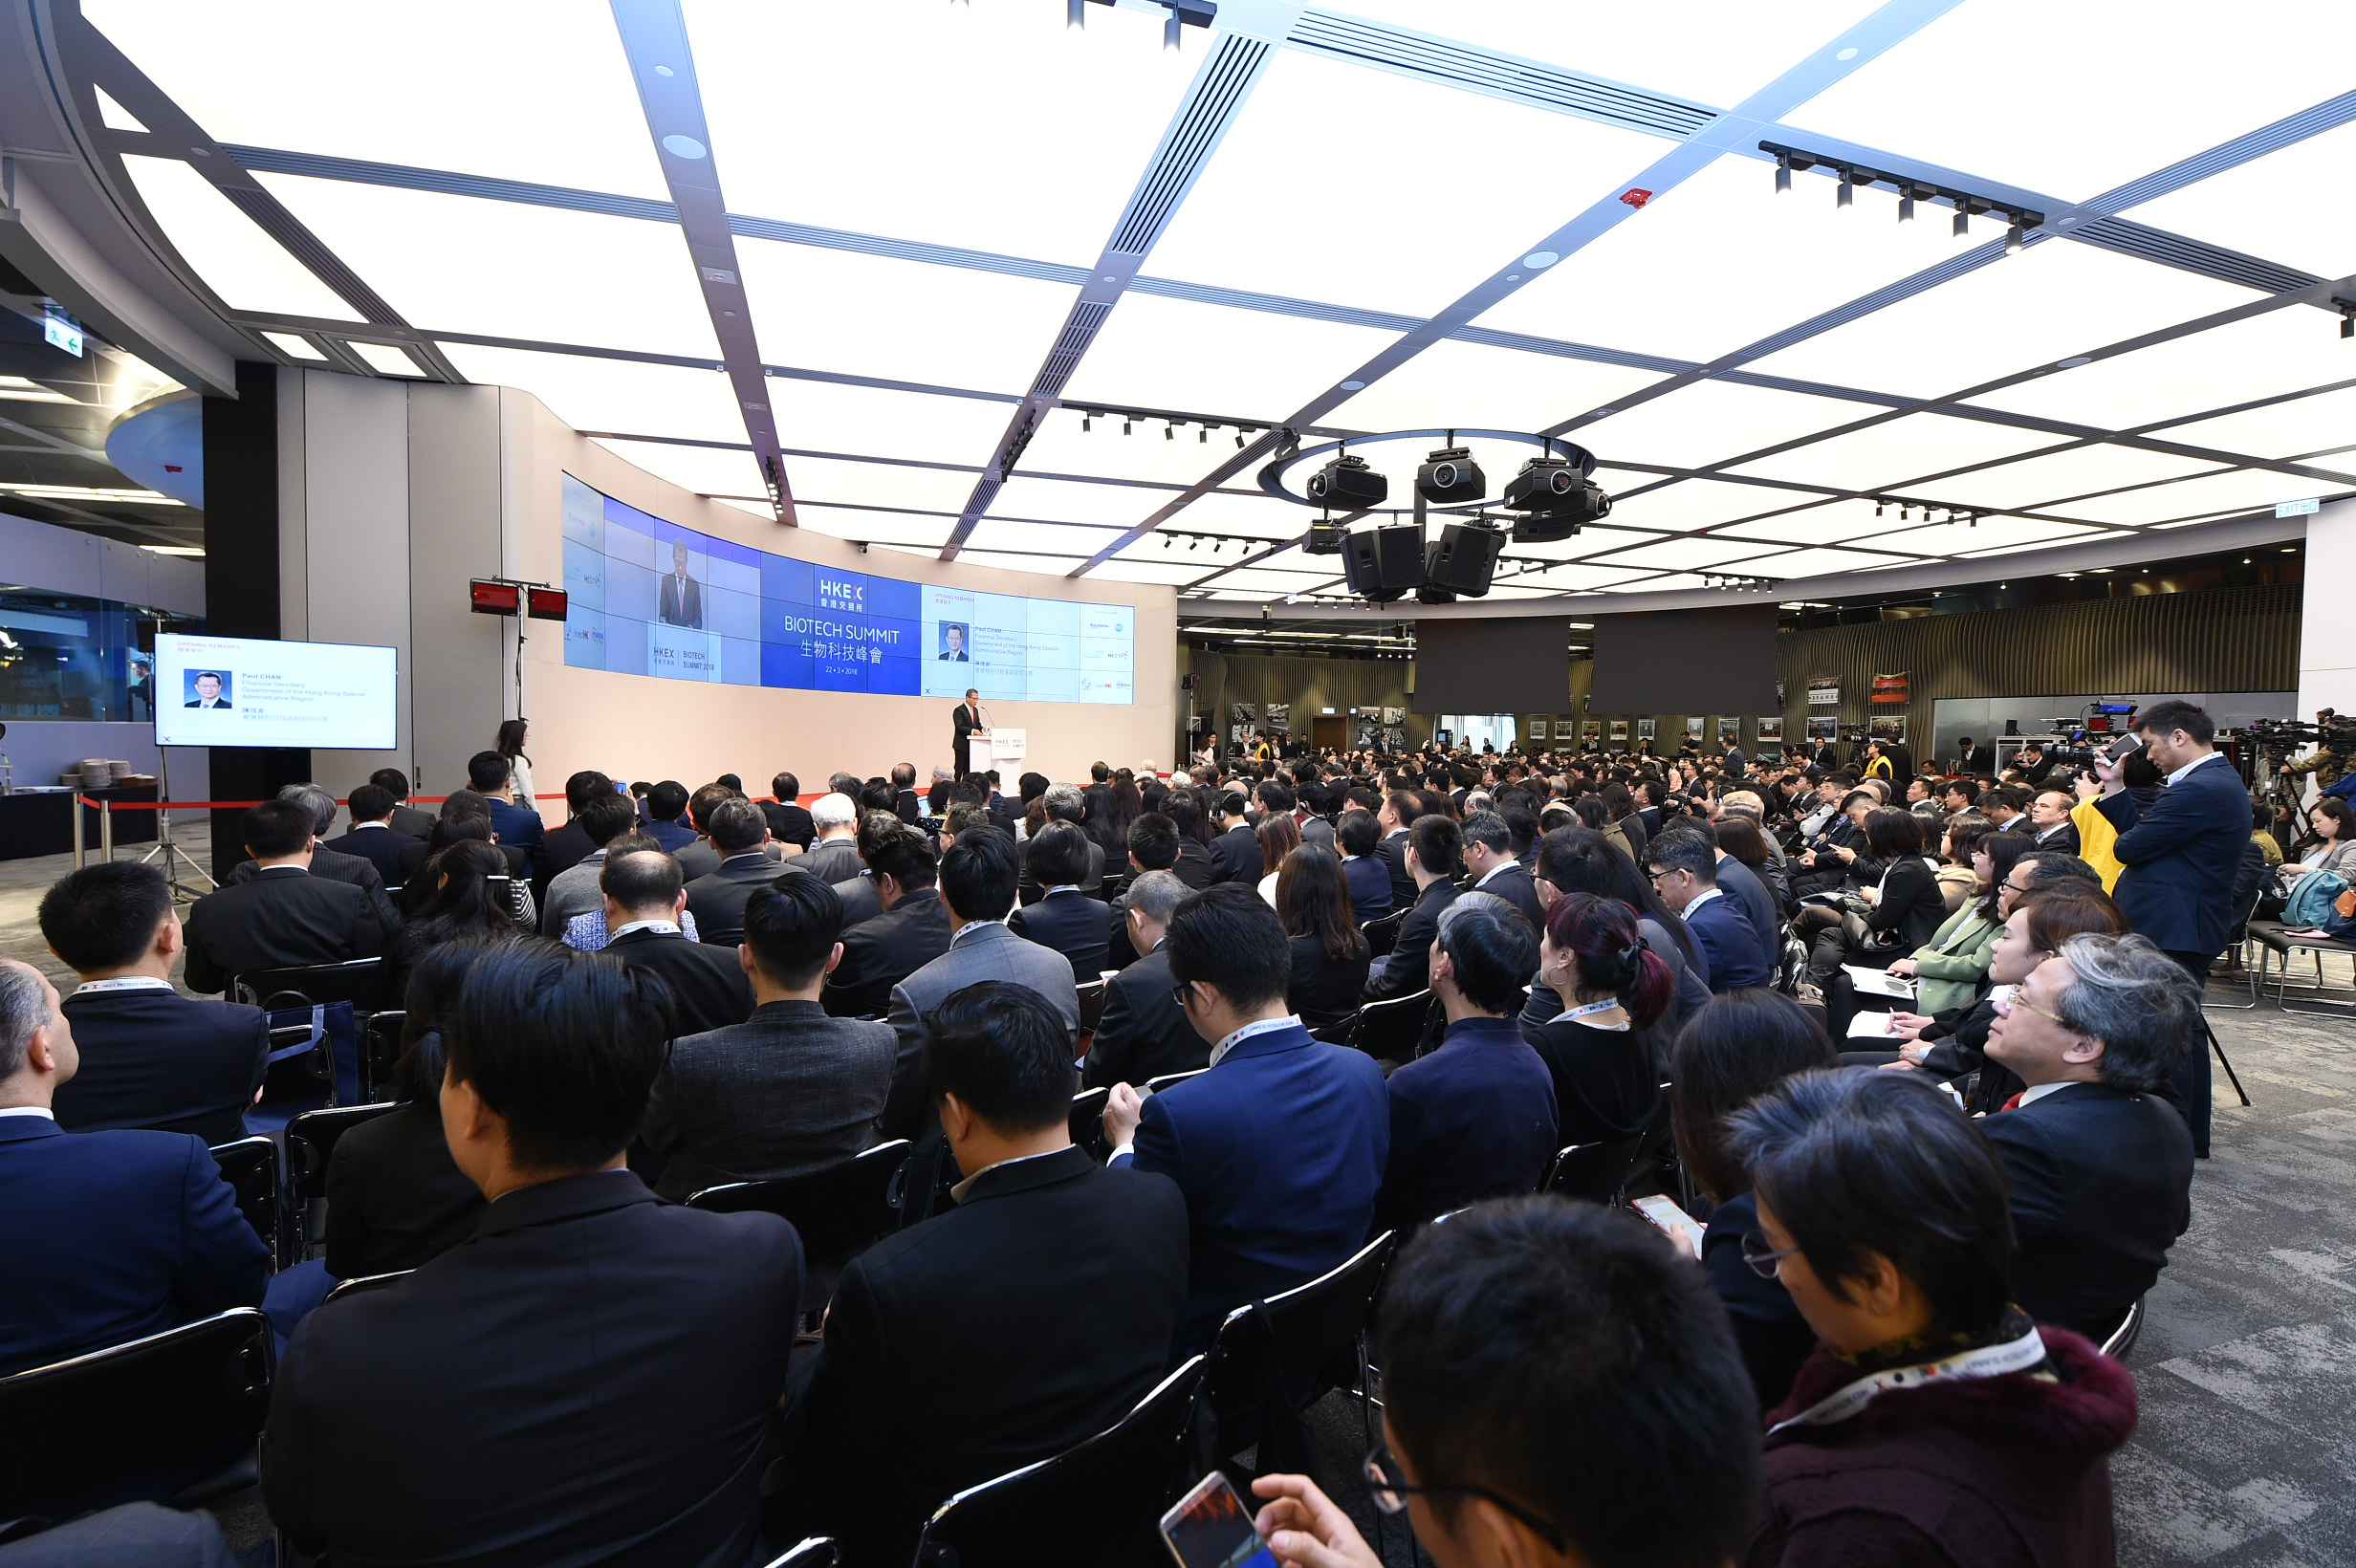 Around 600 guests and delegates attended the inaugural HKEX Biotech Summit on 22 March 2018.